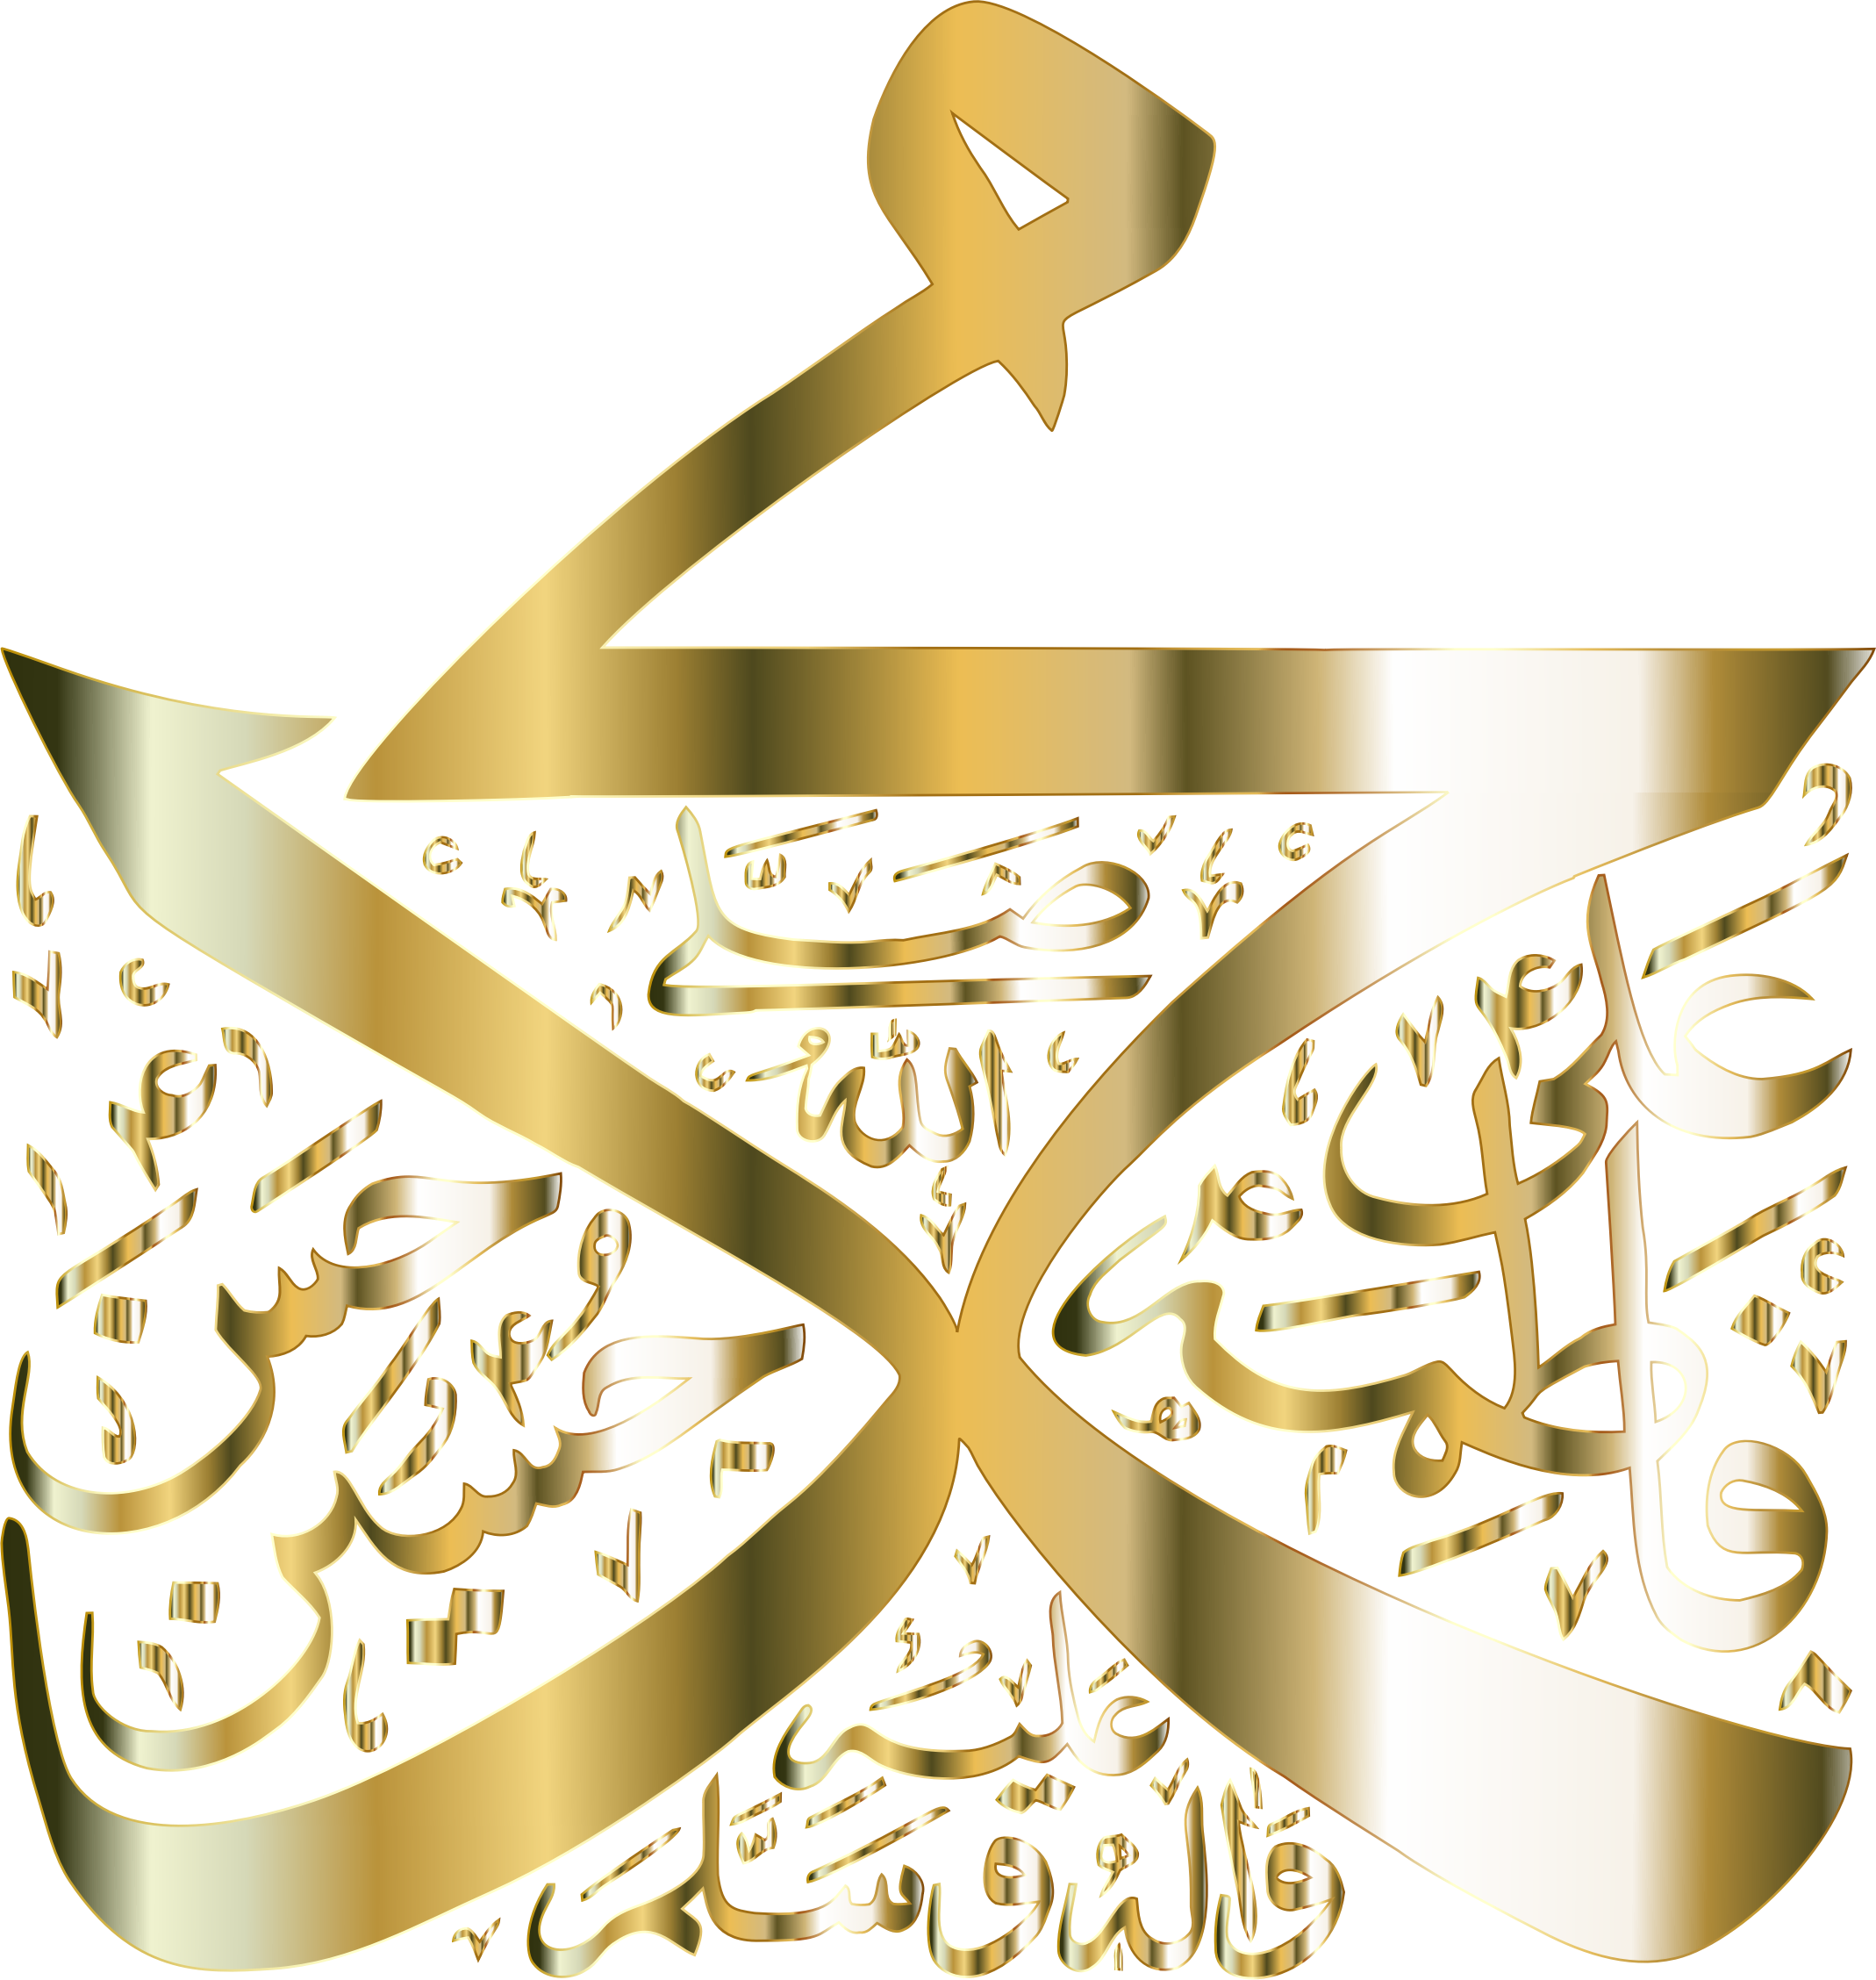 Panjshtan Calligraphy Gold No Background by GDJ